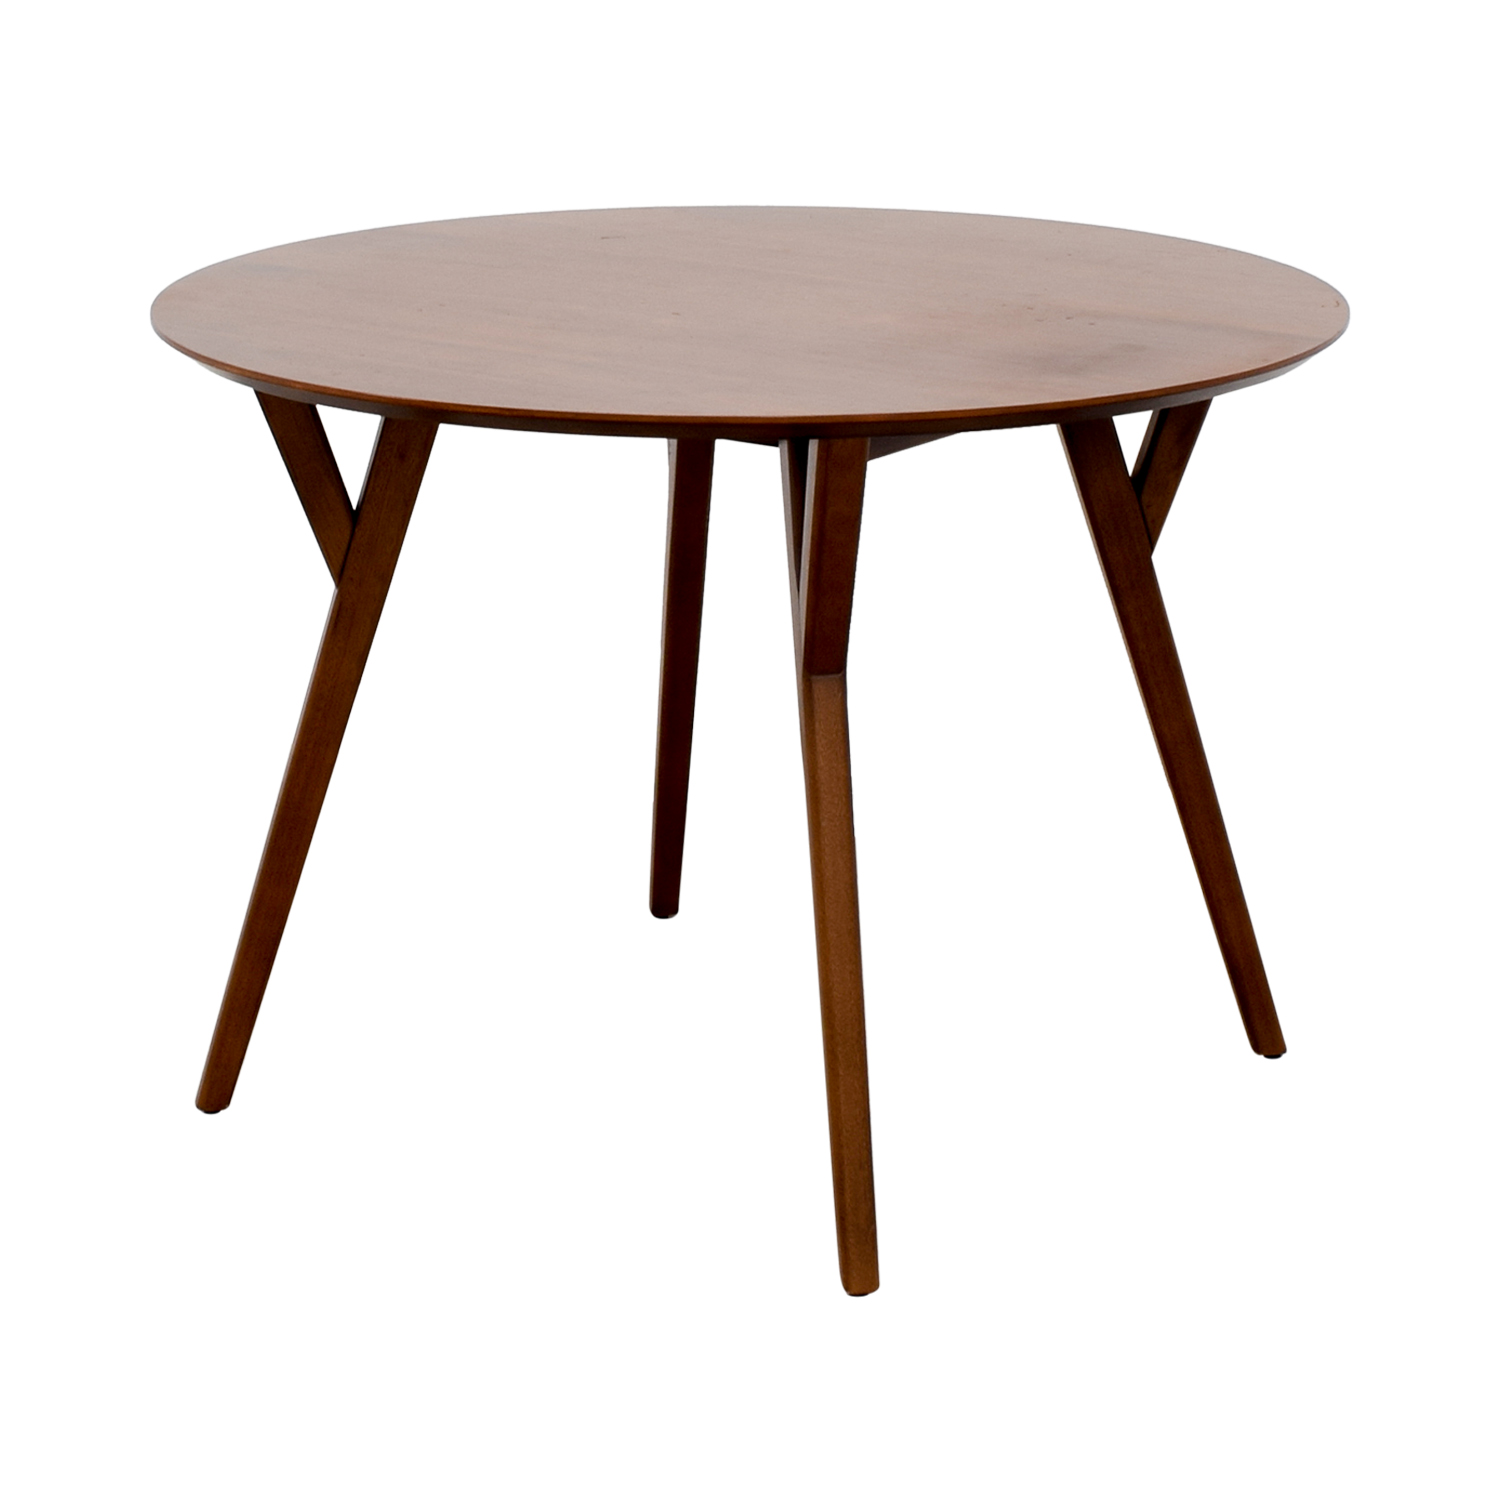 West Elm West Elm Round Wood Dining Table for sale